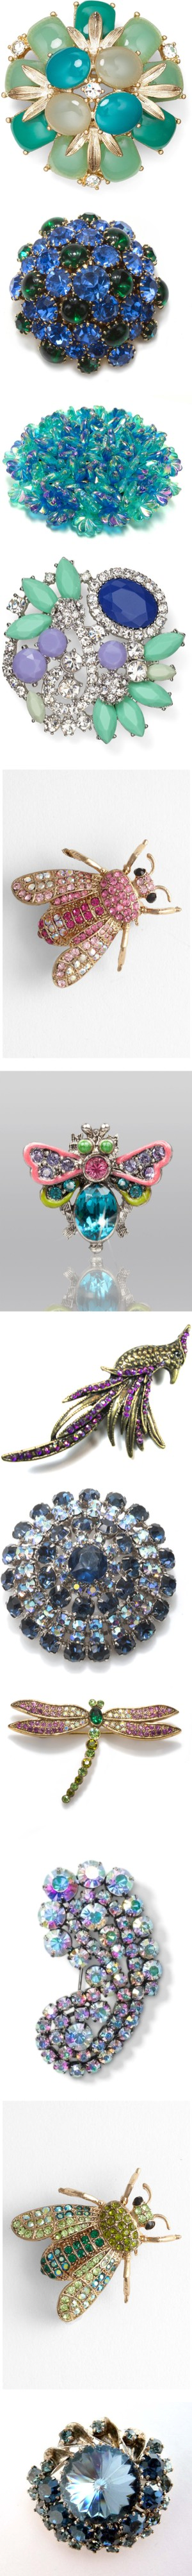 """Crystal Brooches Under $50"" by dana-peterson-forlano on Polyvore"